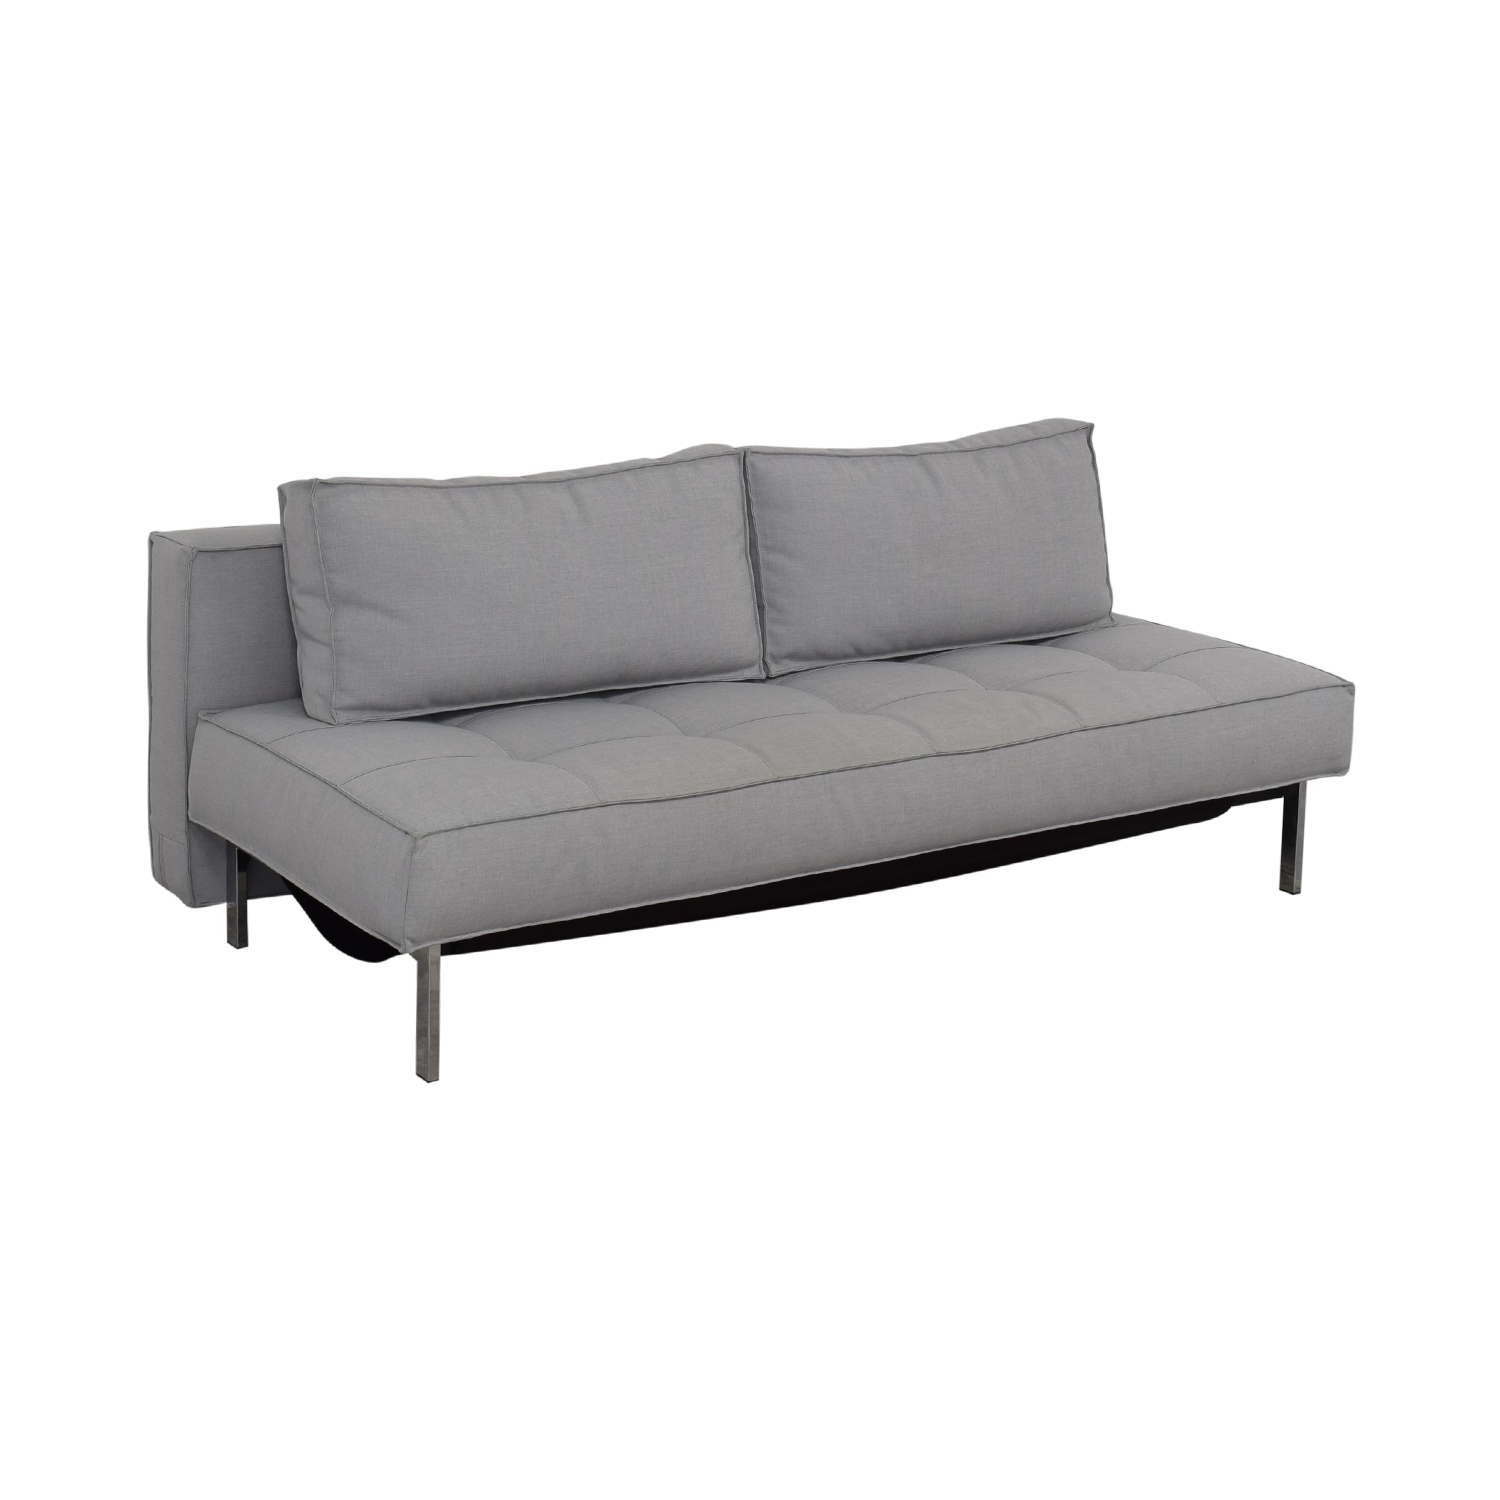 Innovation Living Innovation Living Sly Deluxe Sofa Bed